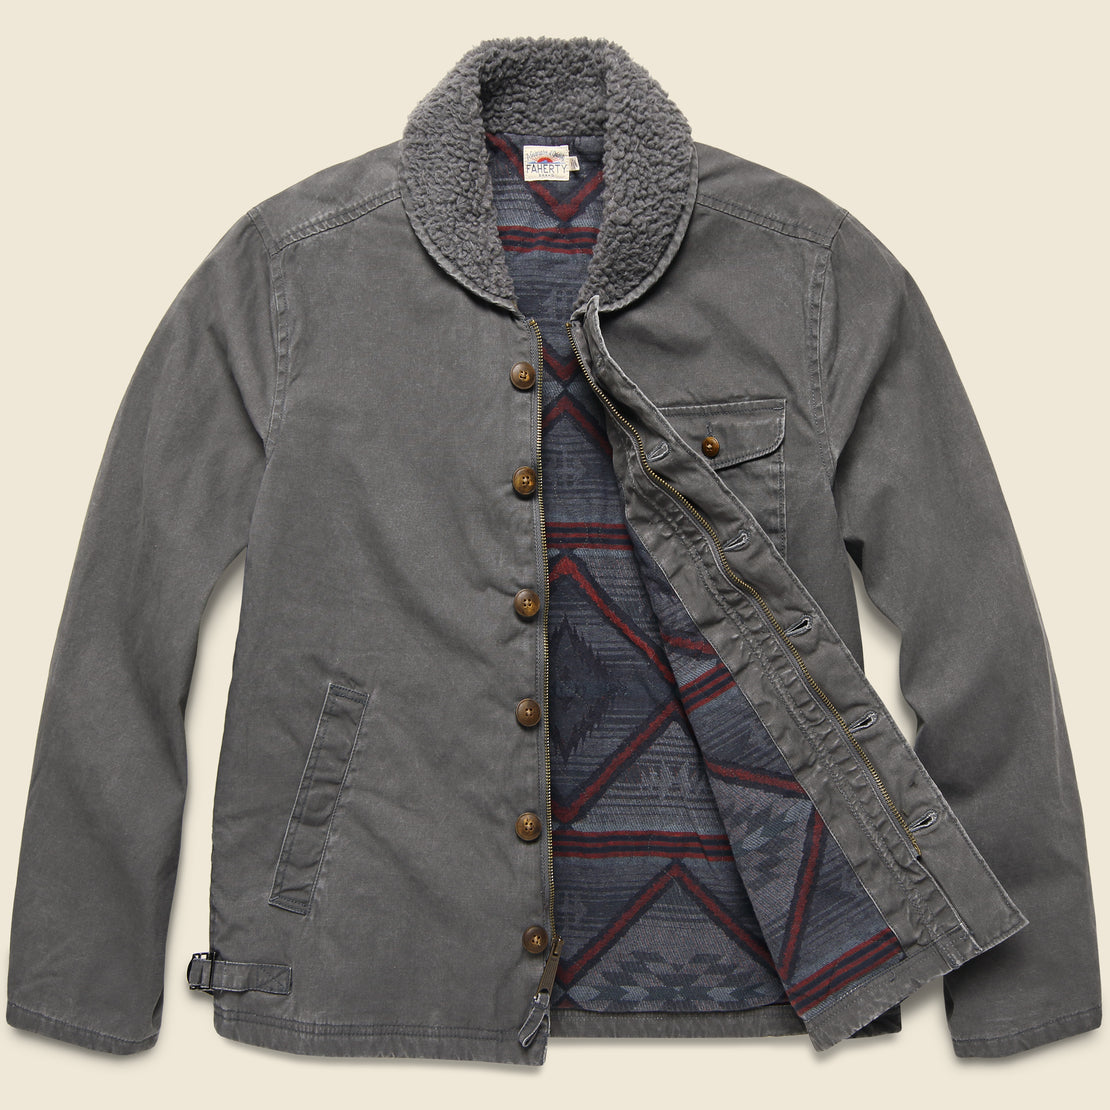 Deck Jacket - Charcoal Sulphur